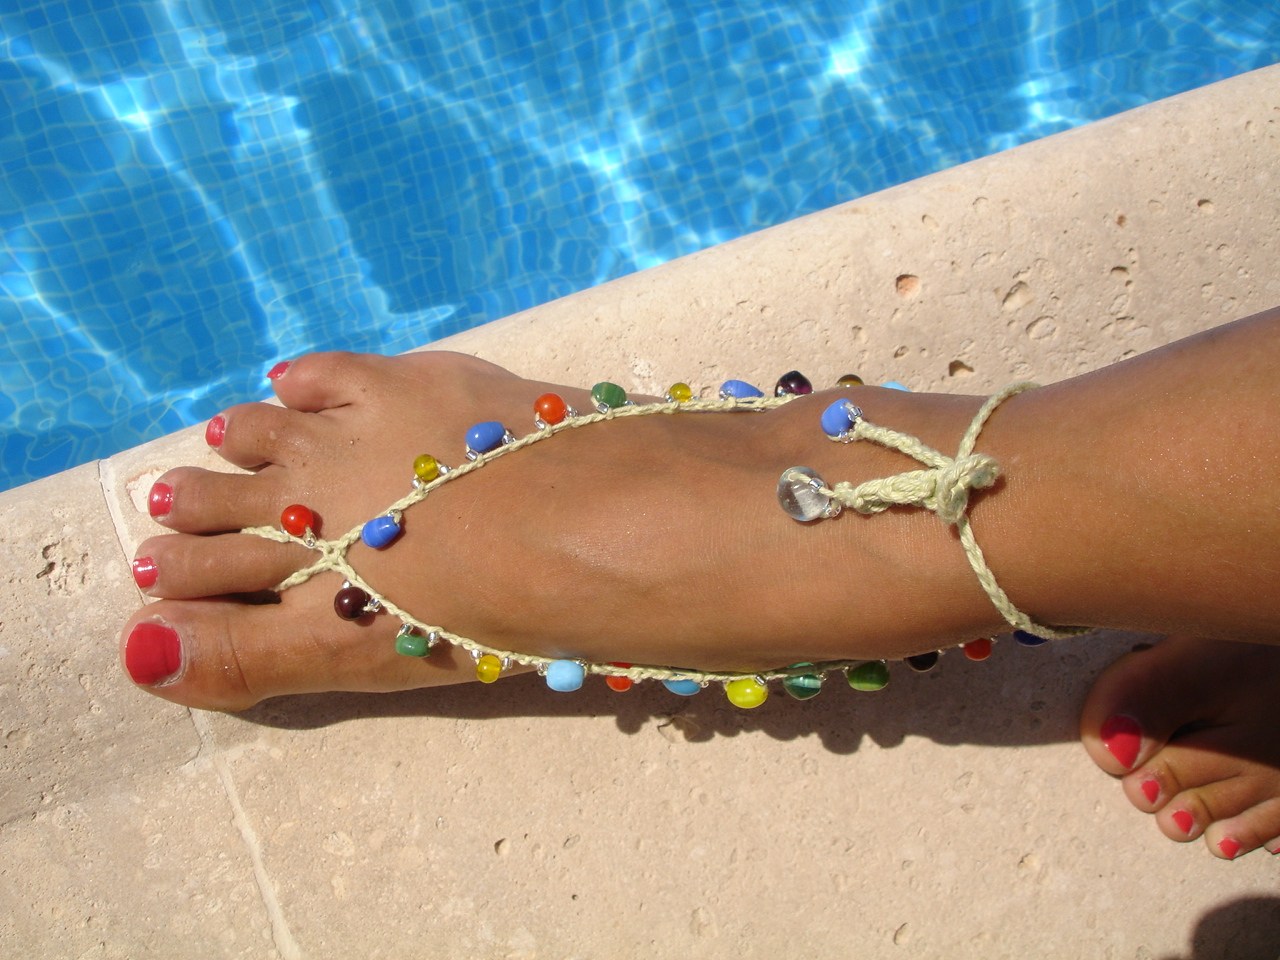 Barefoot Sandals And Foot Adornments To Crochet Free Patterns